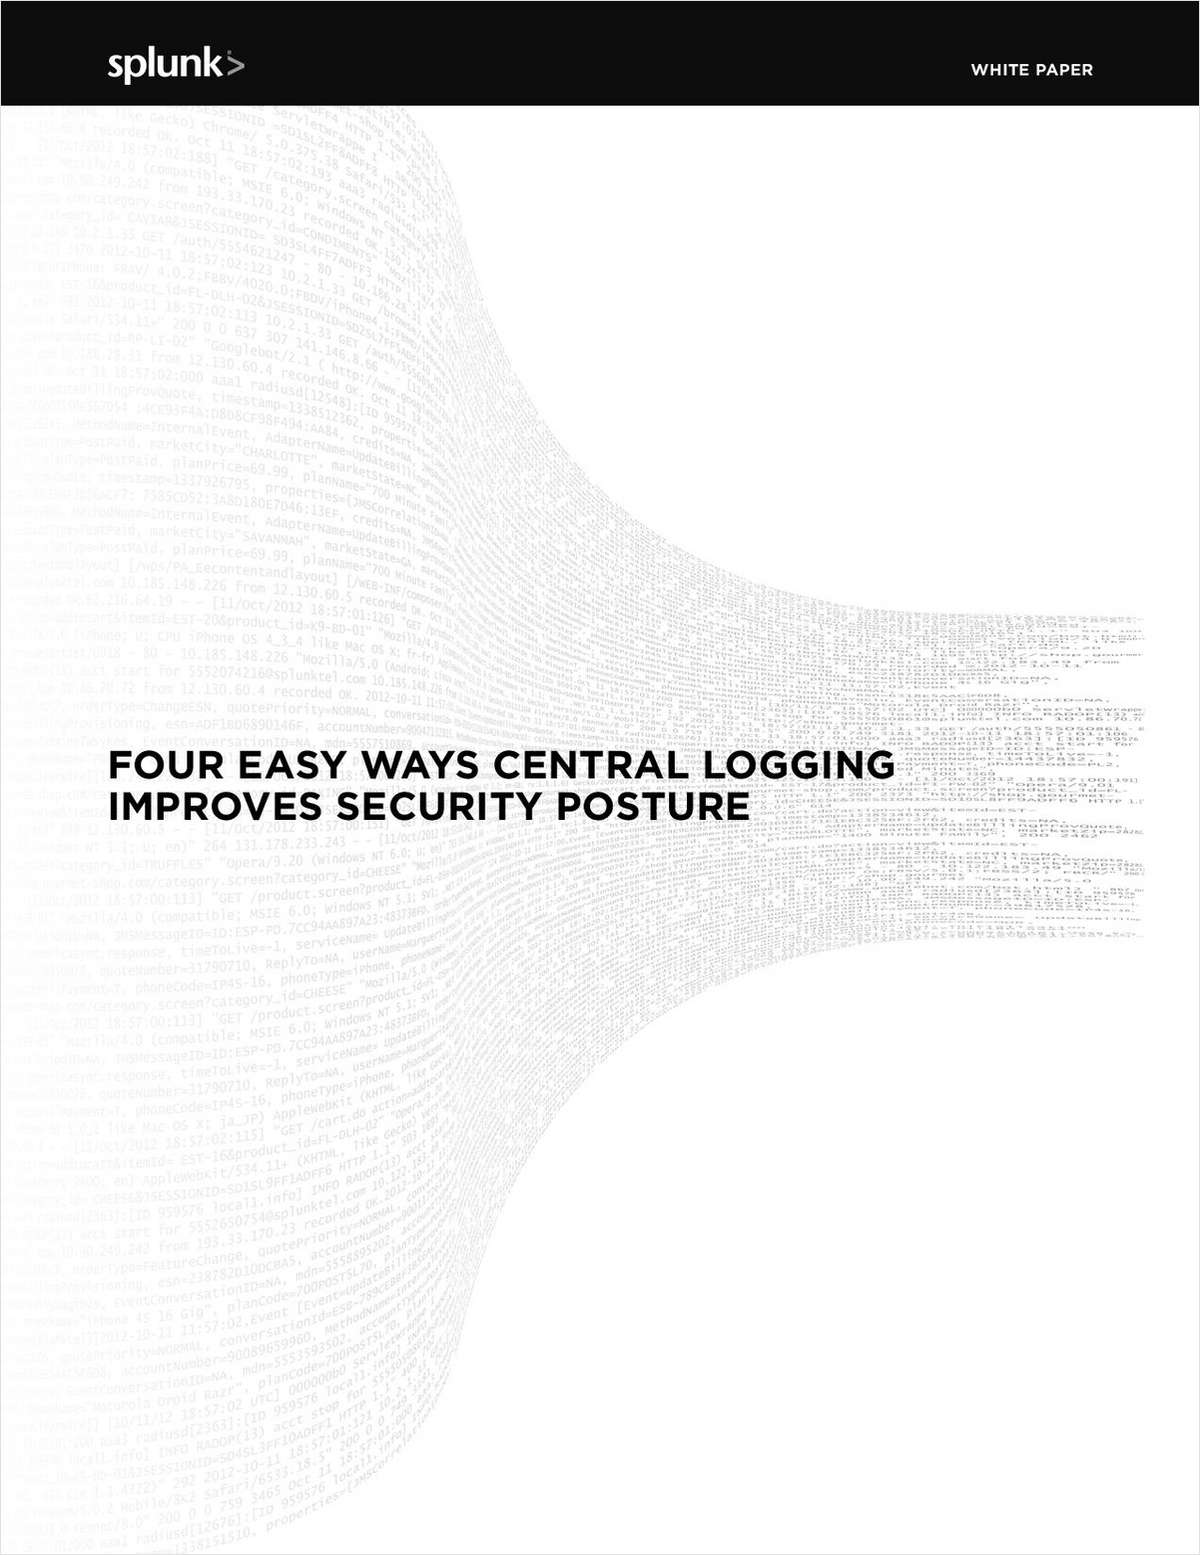 Four Easy Ways Central Logging Improves Security Posture